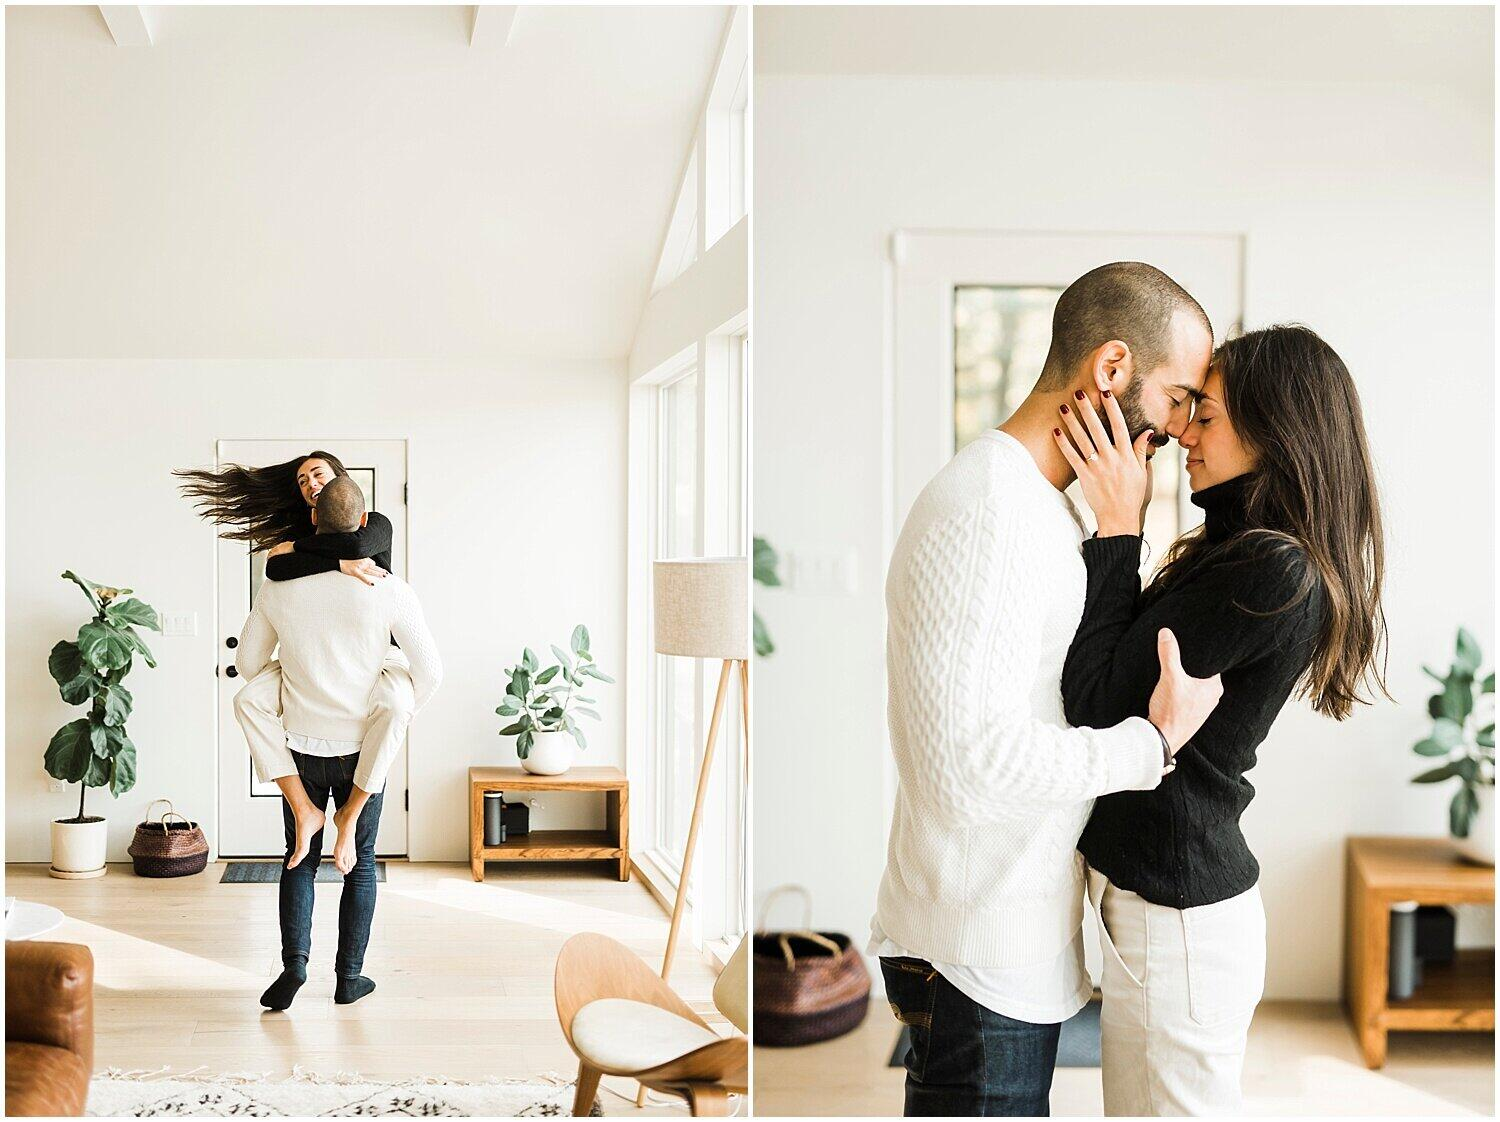 Collage of 2 photos in an indoor engagement session The guy lifting up the girl on his arms in the left image. The couple facing each other in the right image